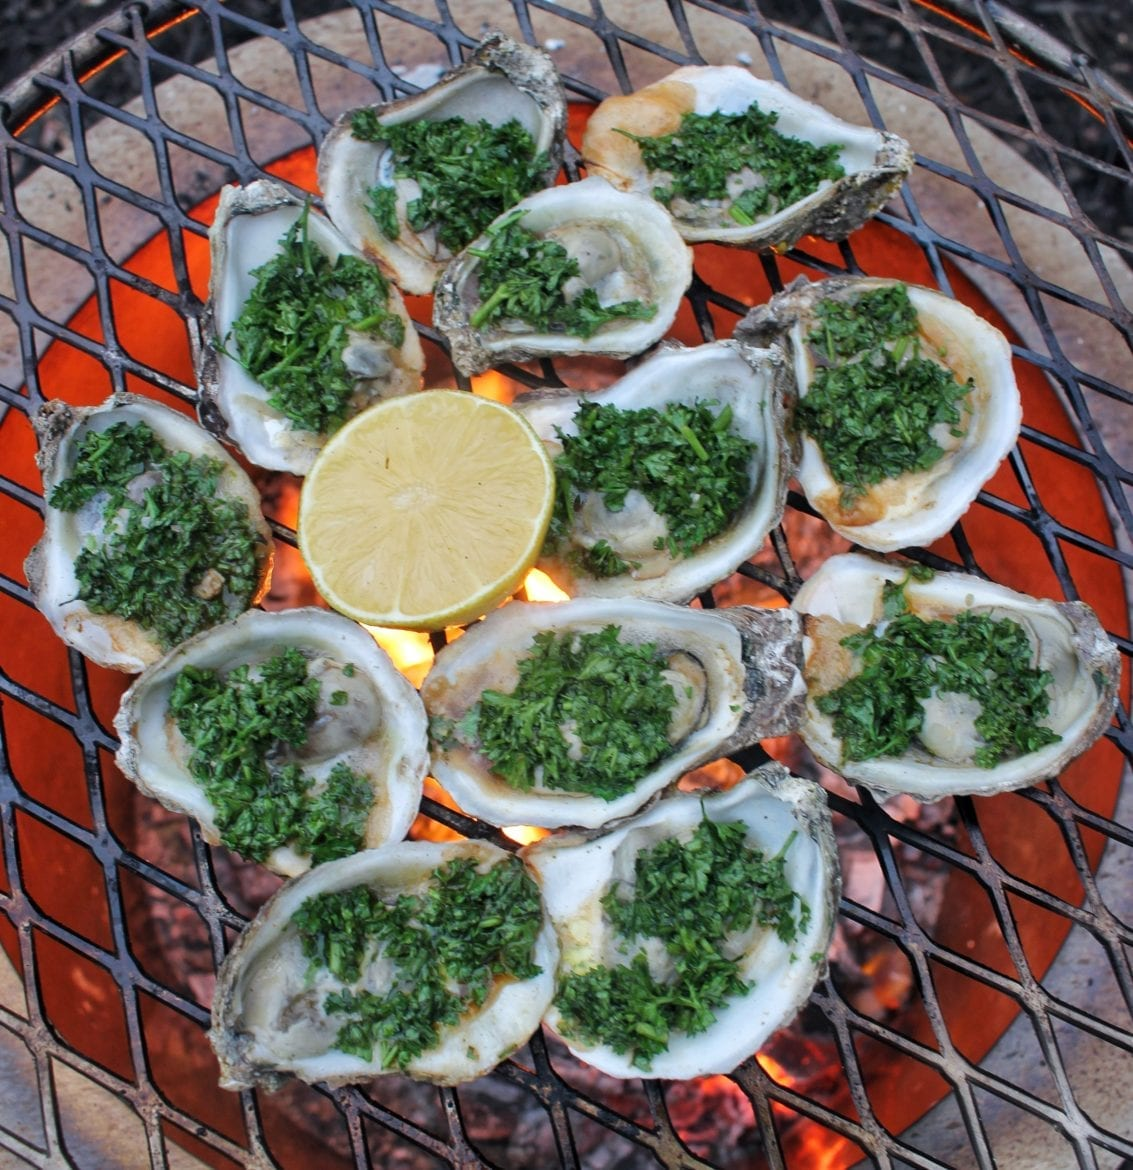 guinness oysters kilpatrick on the grill